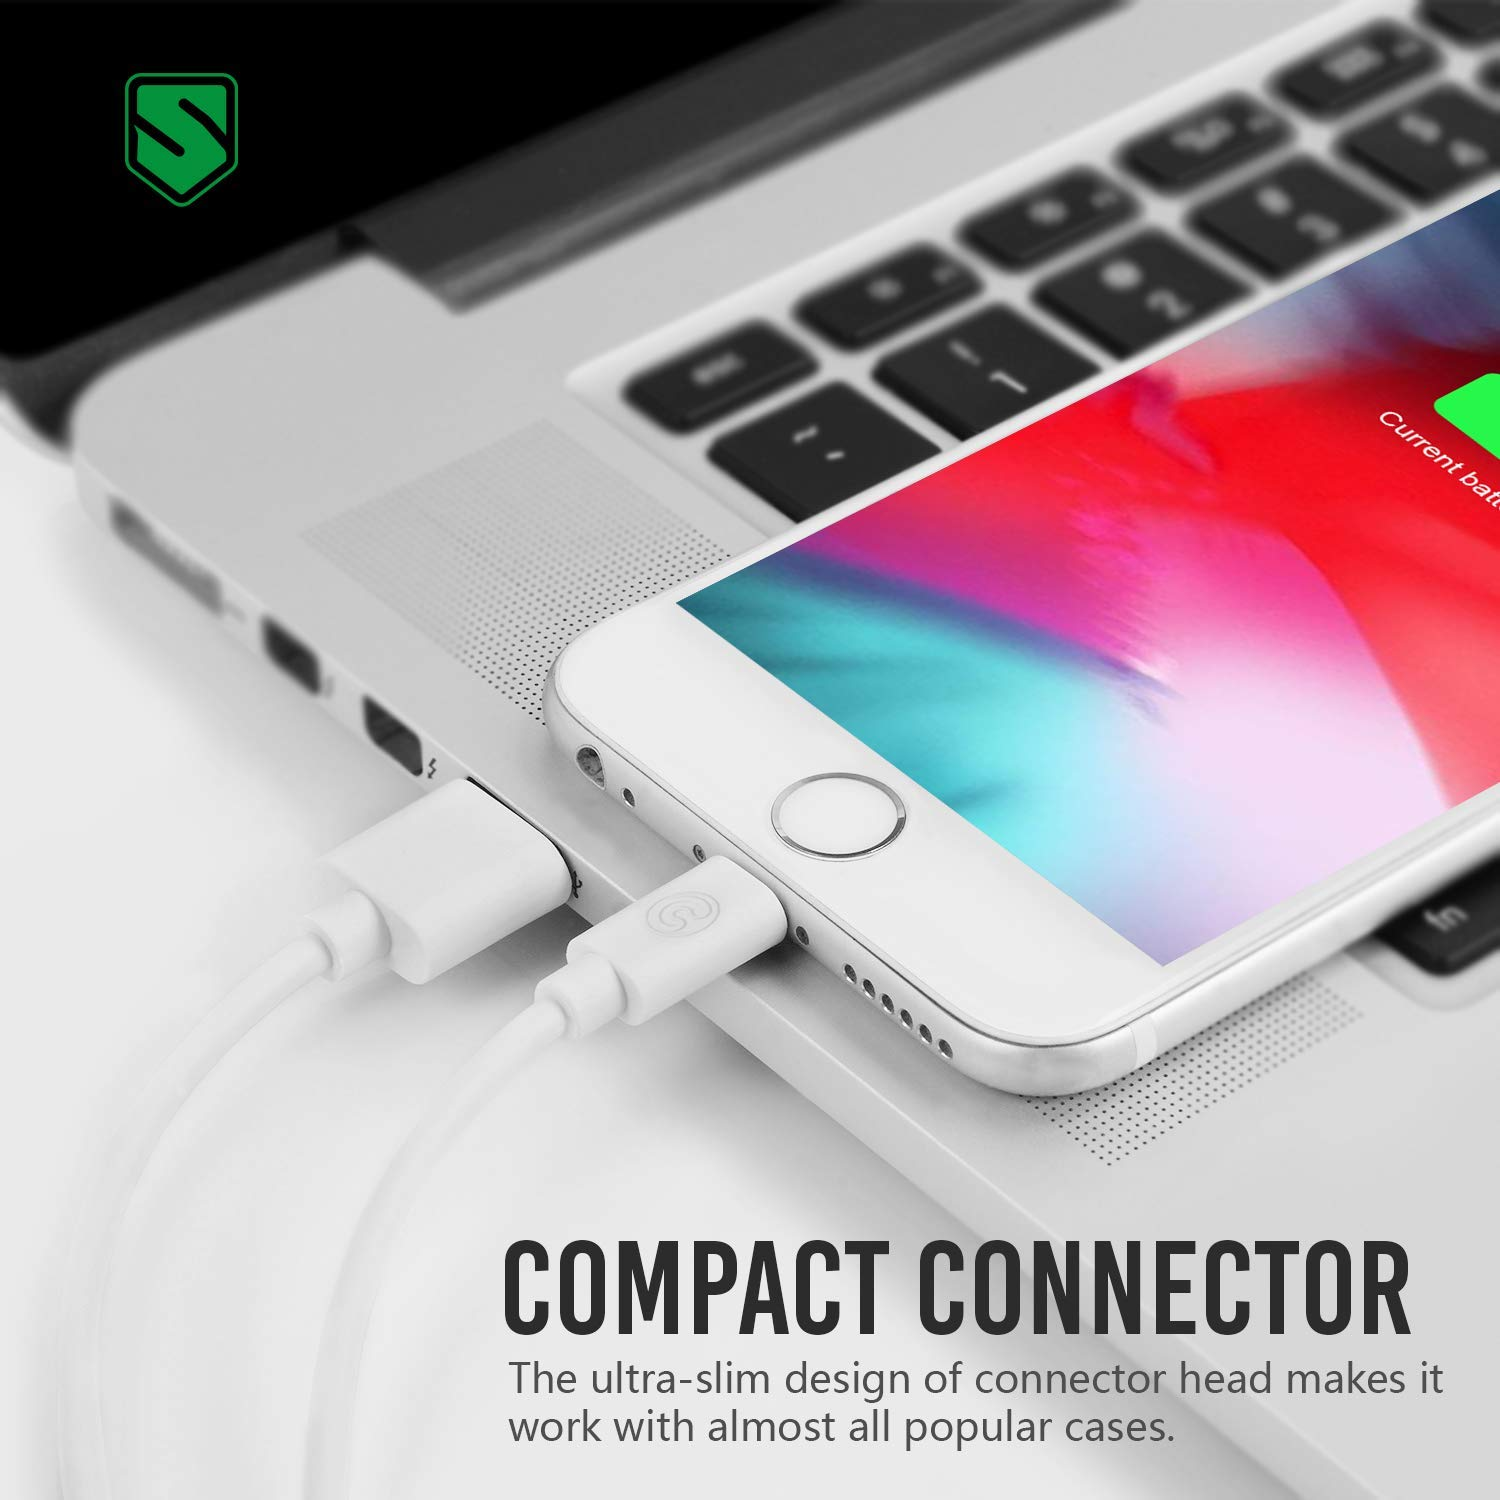 Atill iPhone Charger 6Pack 3FT USB Lightning Cable Charging Cord Compatible with/iPhone XR XS XSMax X 8 8 Plus 7 7 Plus 6 6s Plus SE 5 5s 5c iPad iPod White